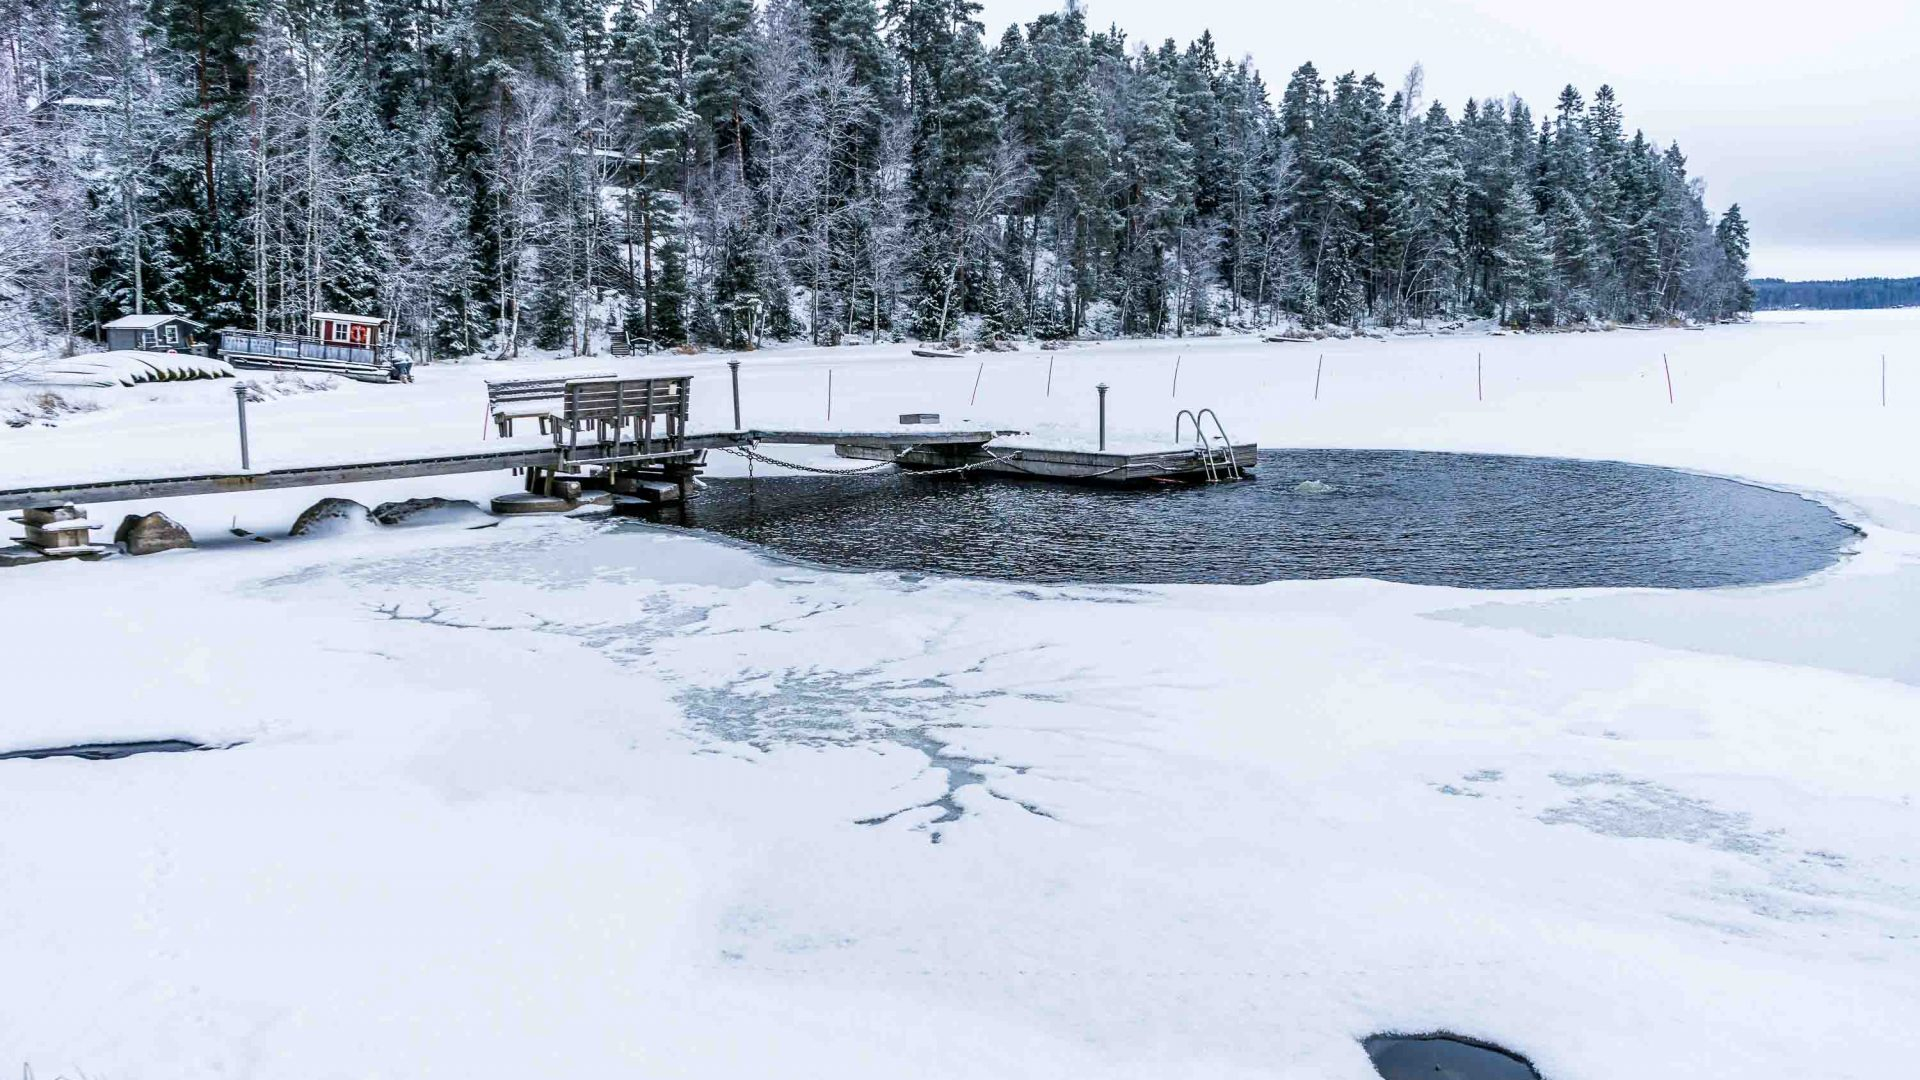 Ice swimming in one of Finland's lake is an invigorating activity for many Finns.